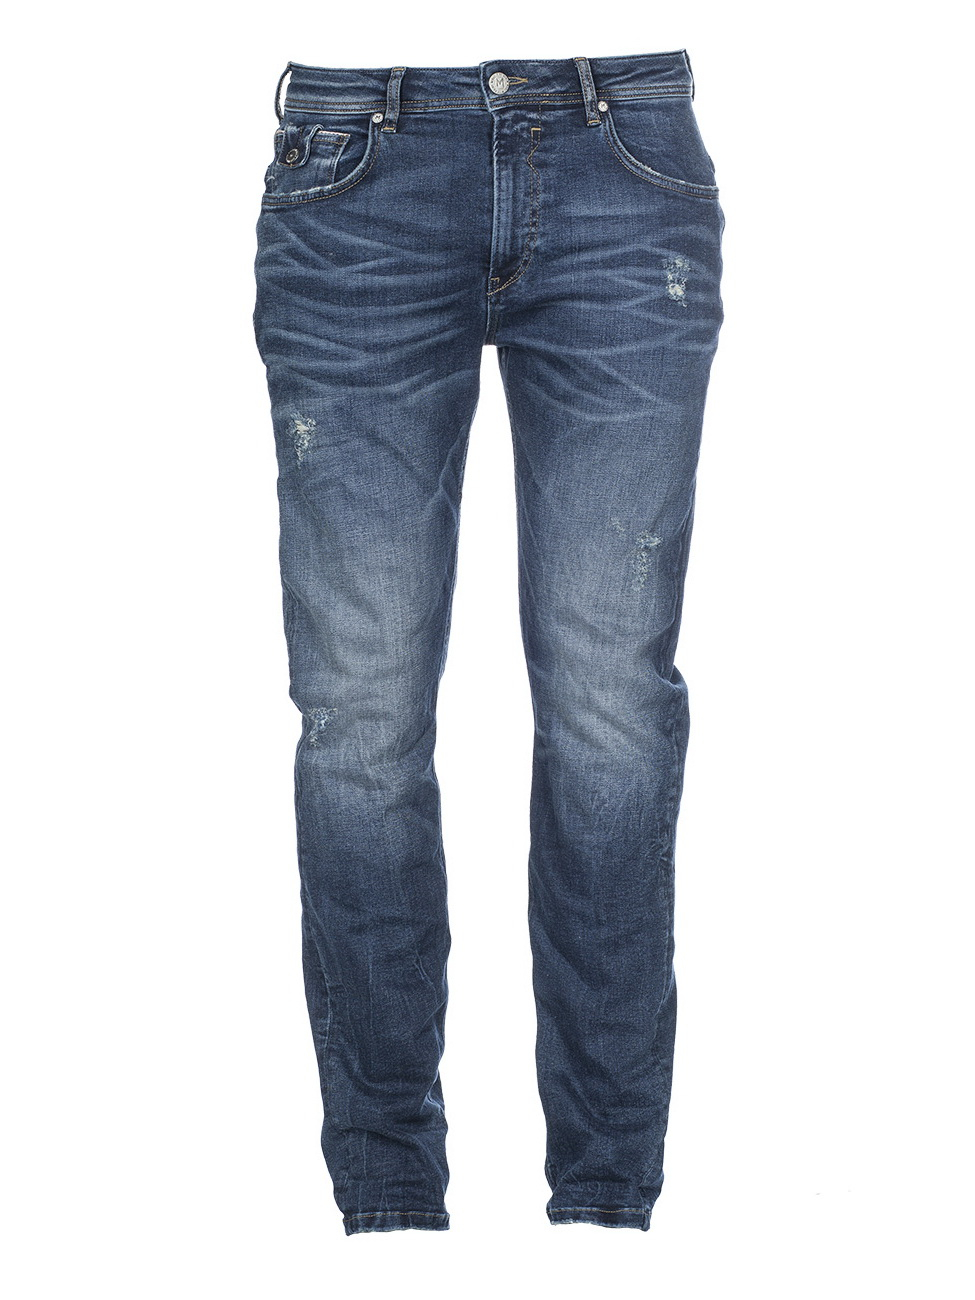 MOD Herren Jeans Ricardo - Slim Fit - Blau - Messina Blue Destroyed